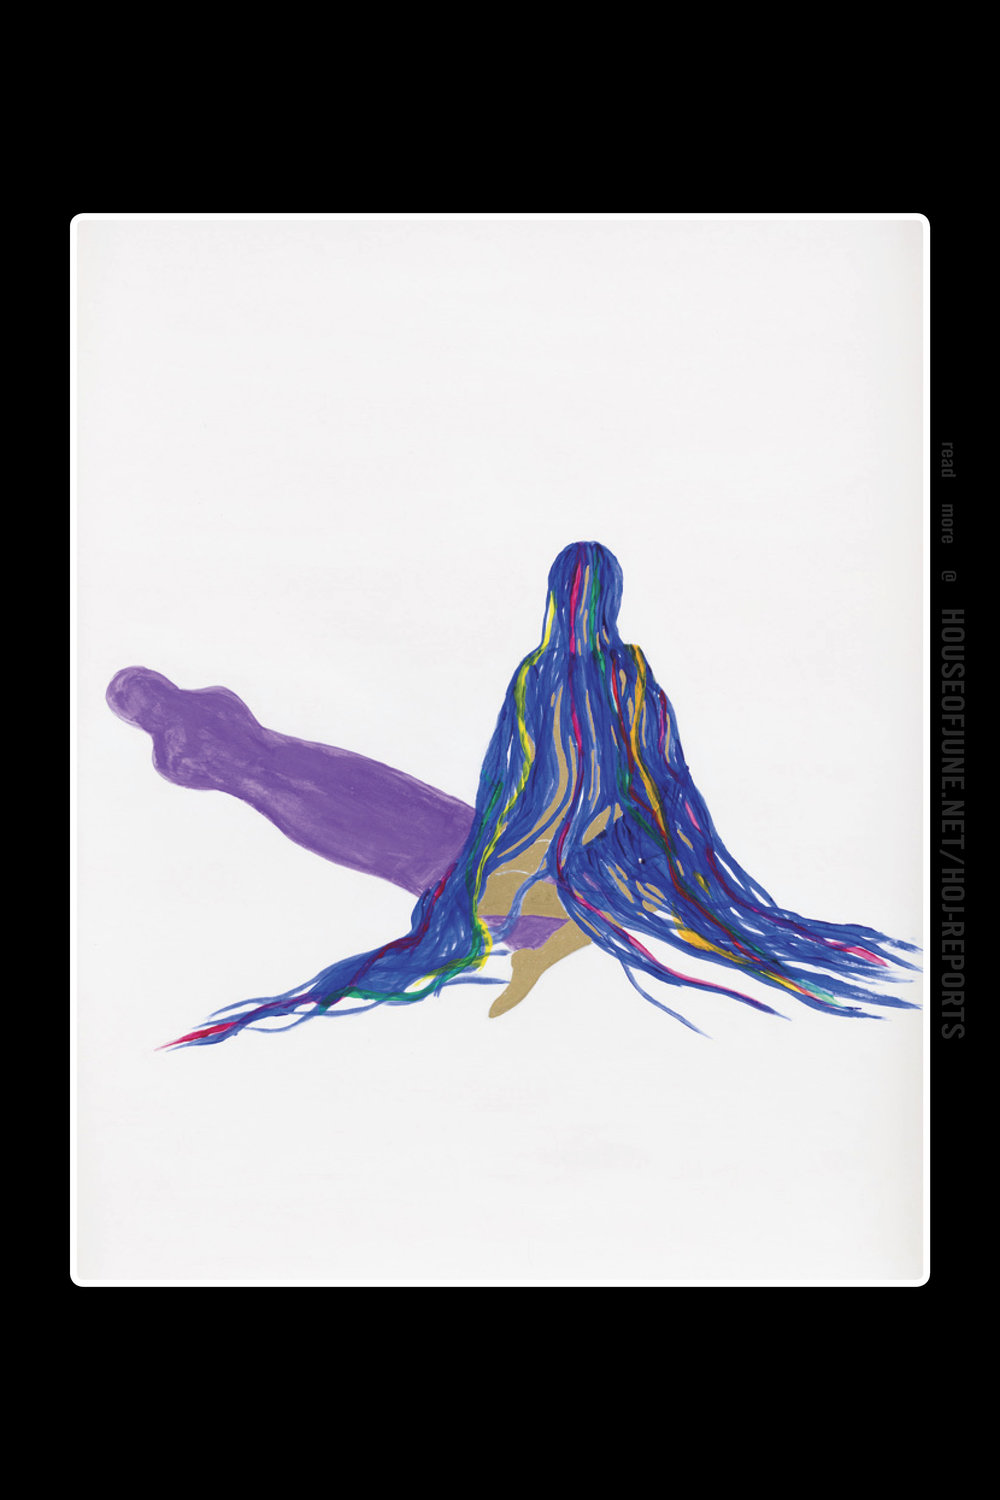 Grace Schwindt , Blue Ribbons and Purple Shadow, 2013